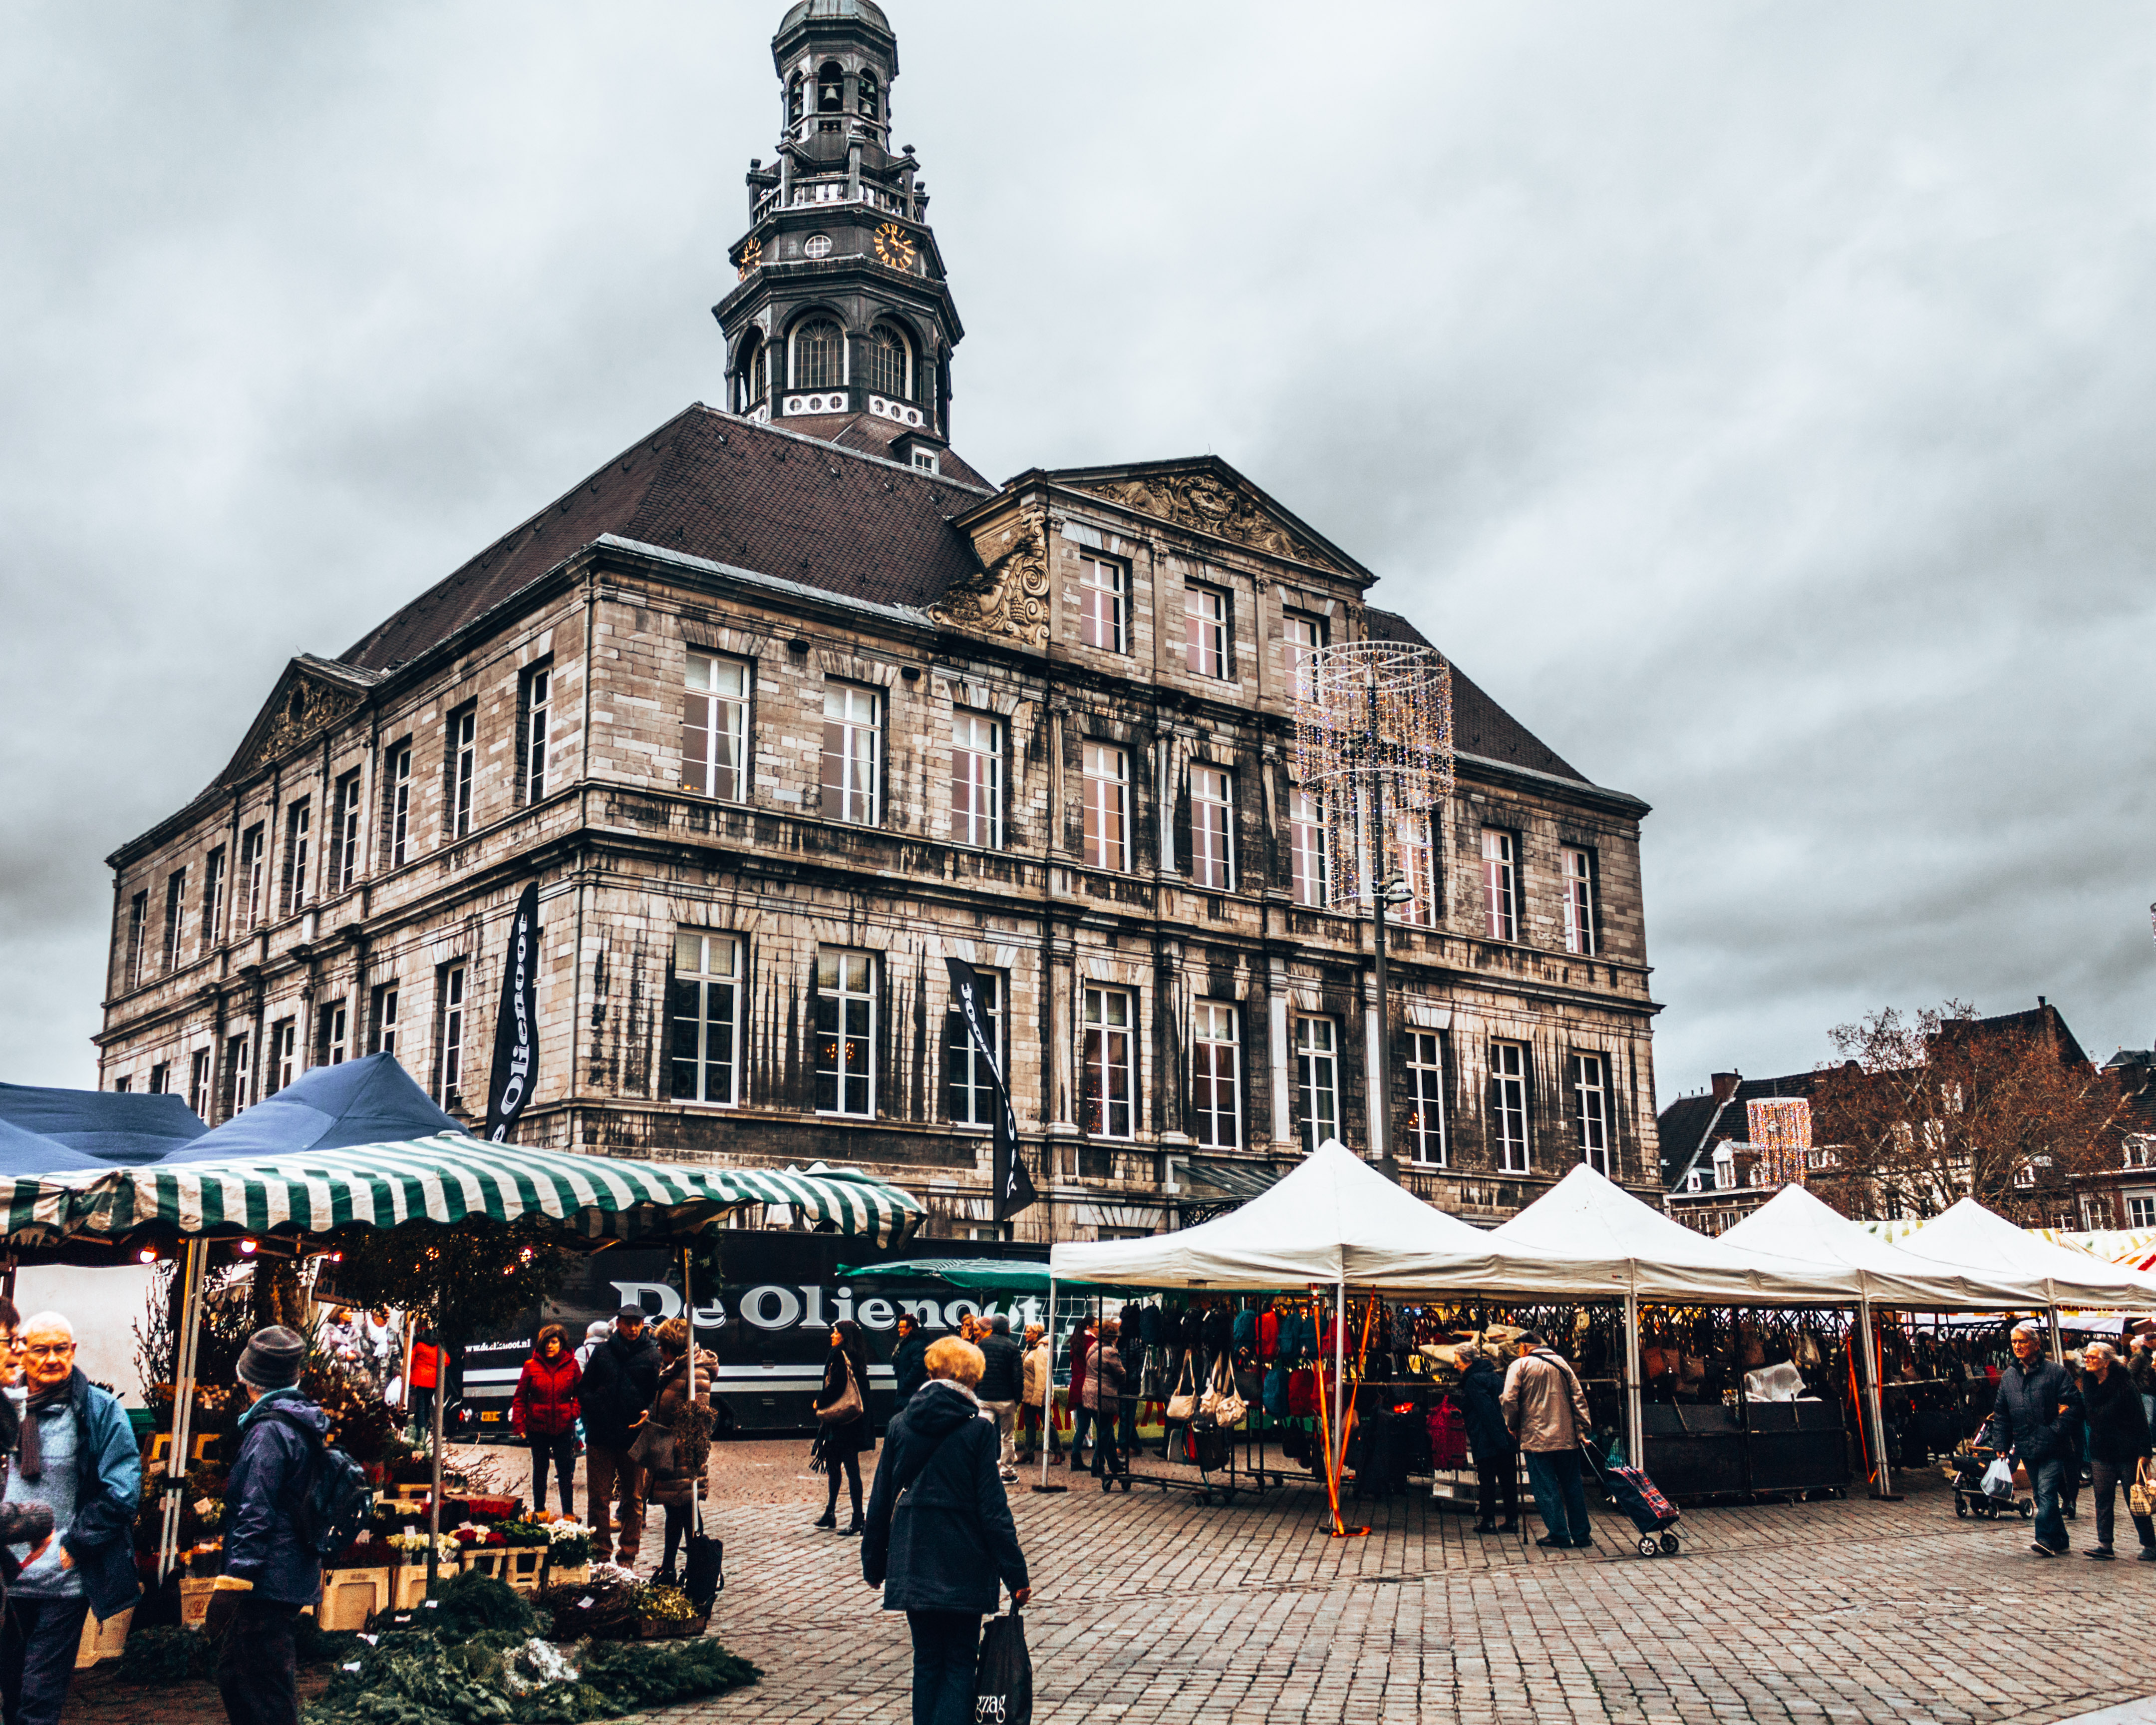 The market outside Maastricht city hall in Maastricht, Netherlands